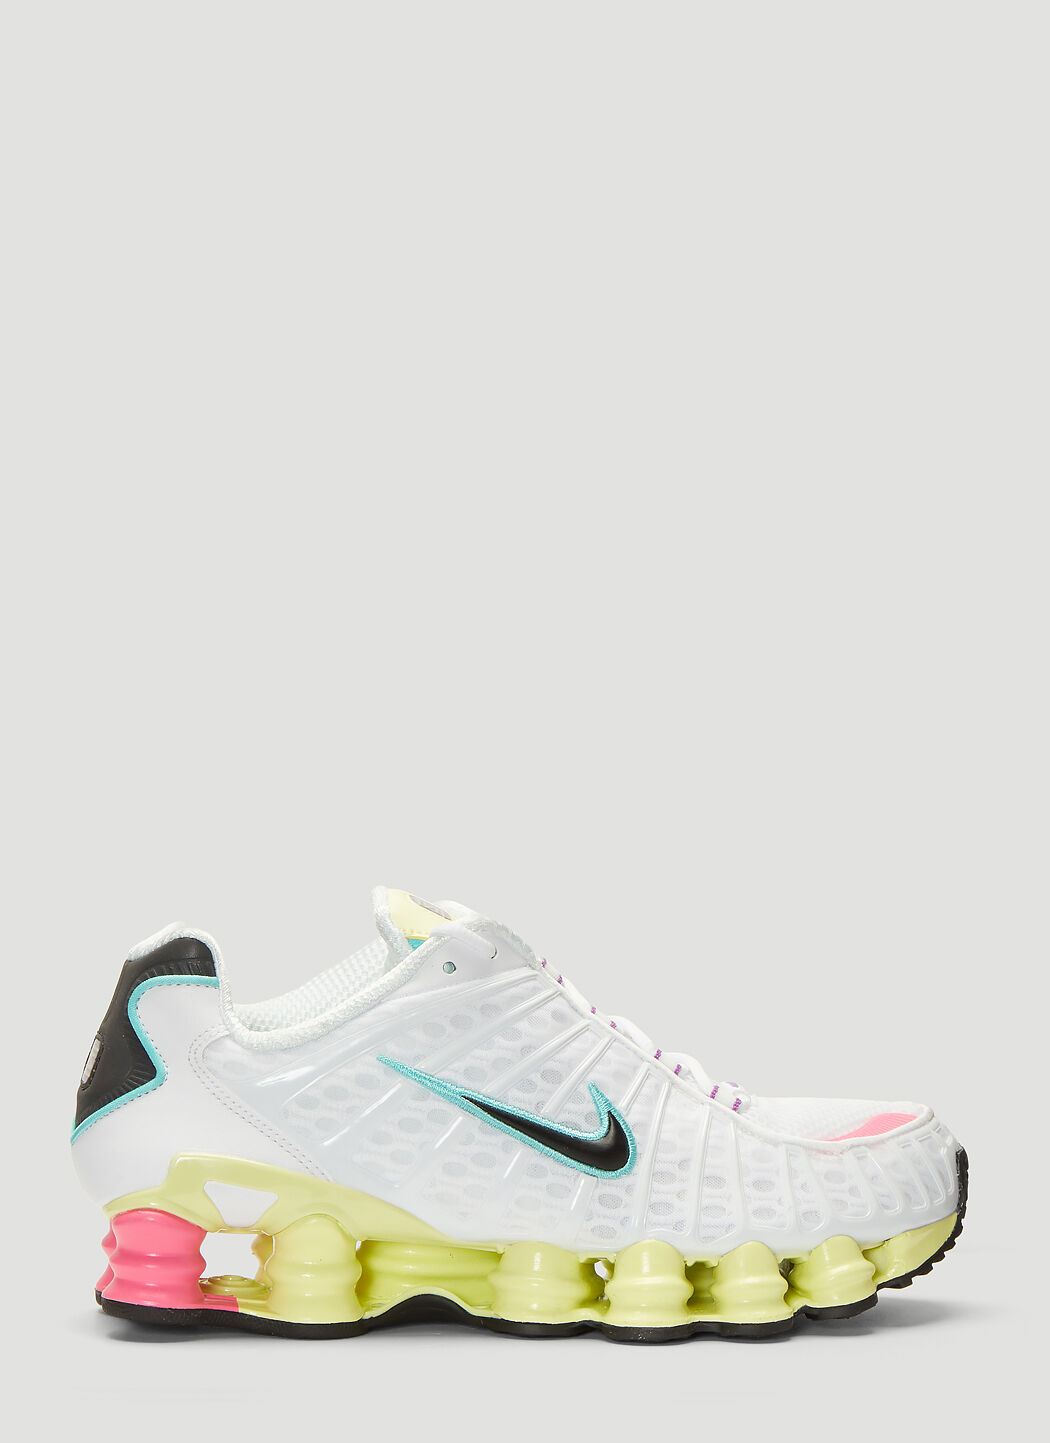 Nike Shoes for Women | Shop Now on LN CC